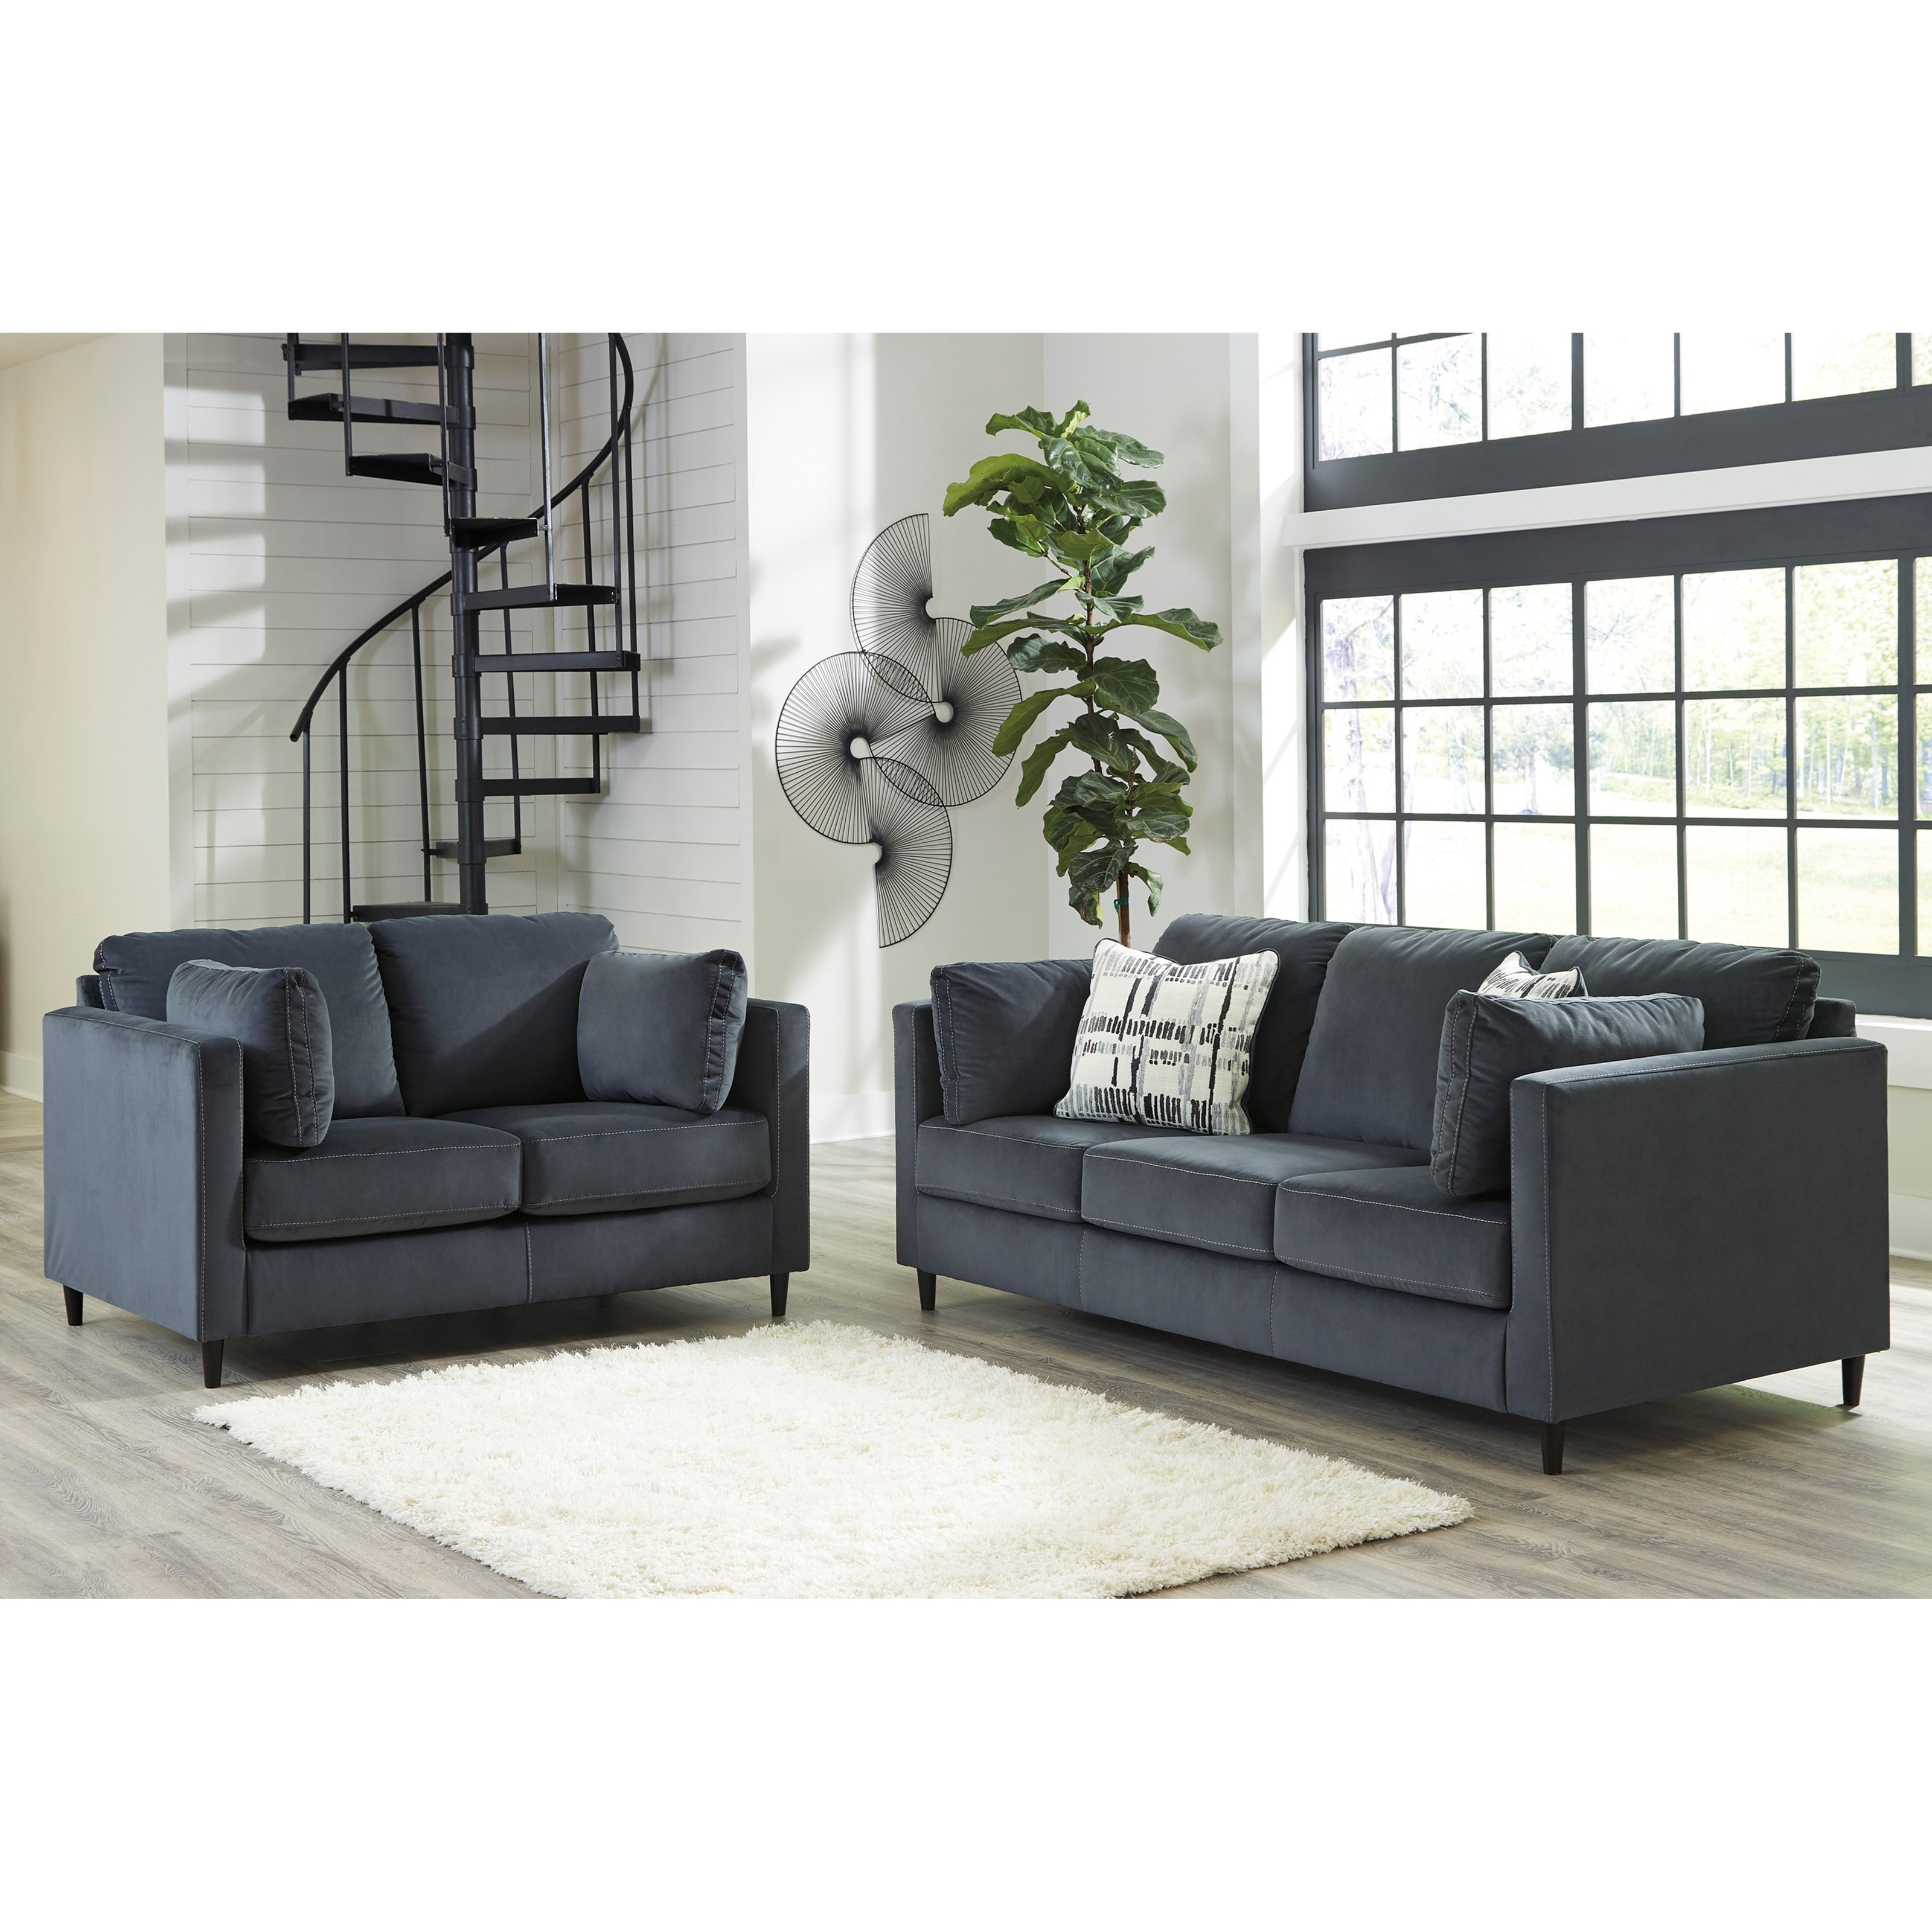 Kennewick Stationary Living Room Group by Ashley (Signature Design) at Johnny Janosik